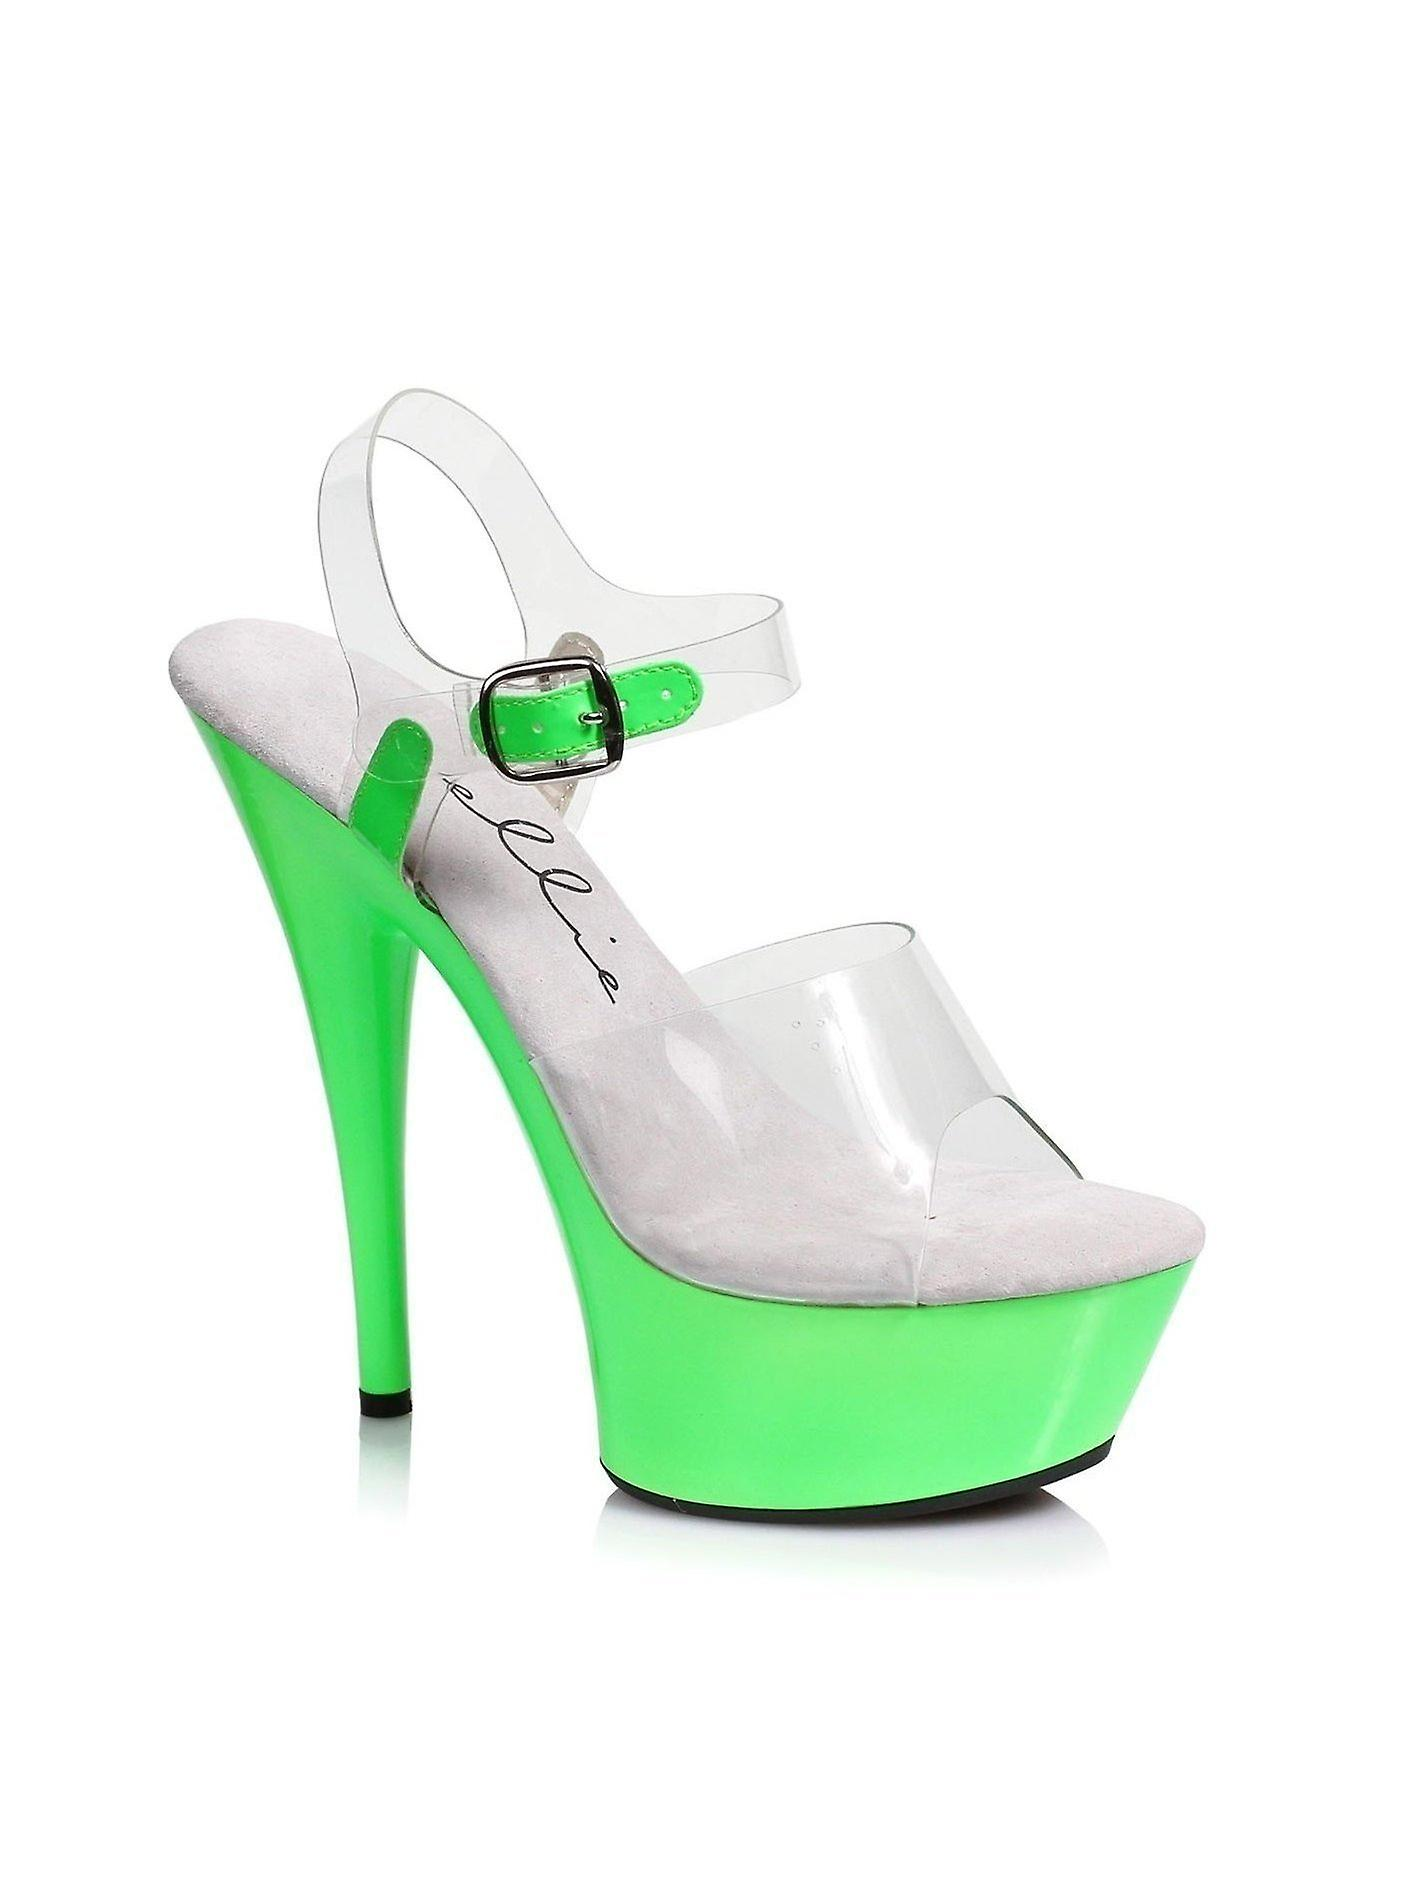 Ellie Schuhe E-609-Roxy 6 Neon Stiletto Sandale Blacklight sensitive